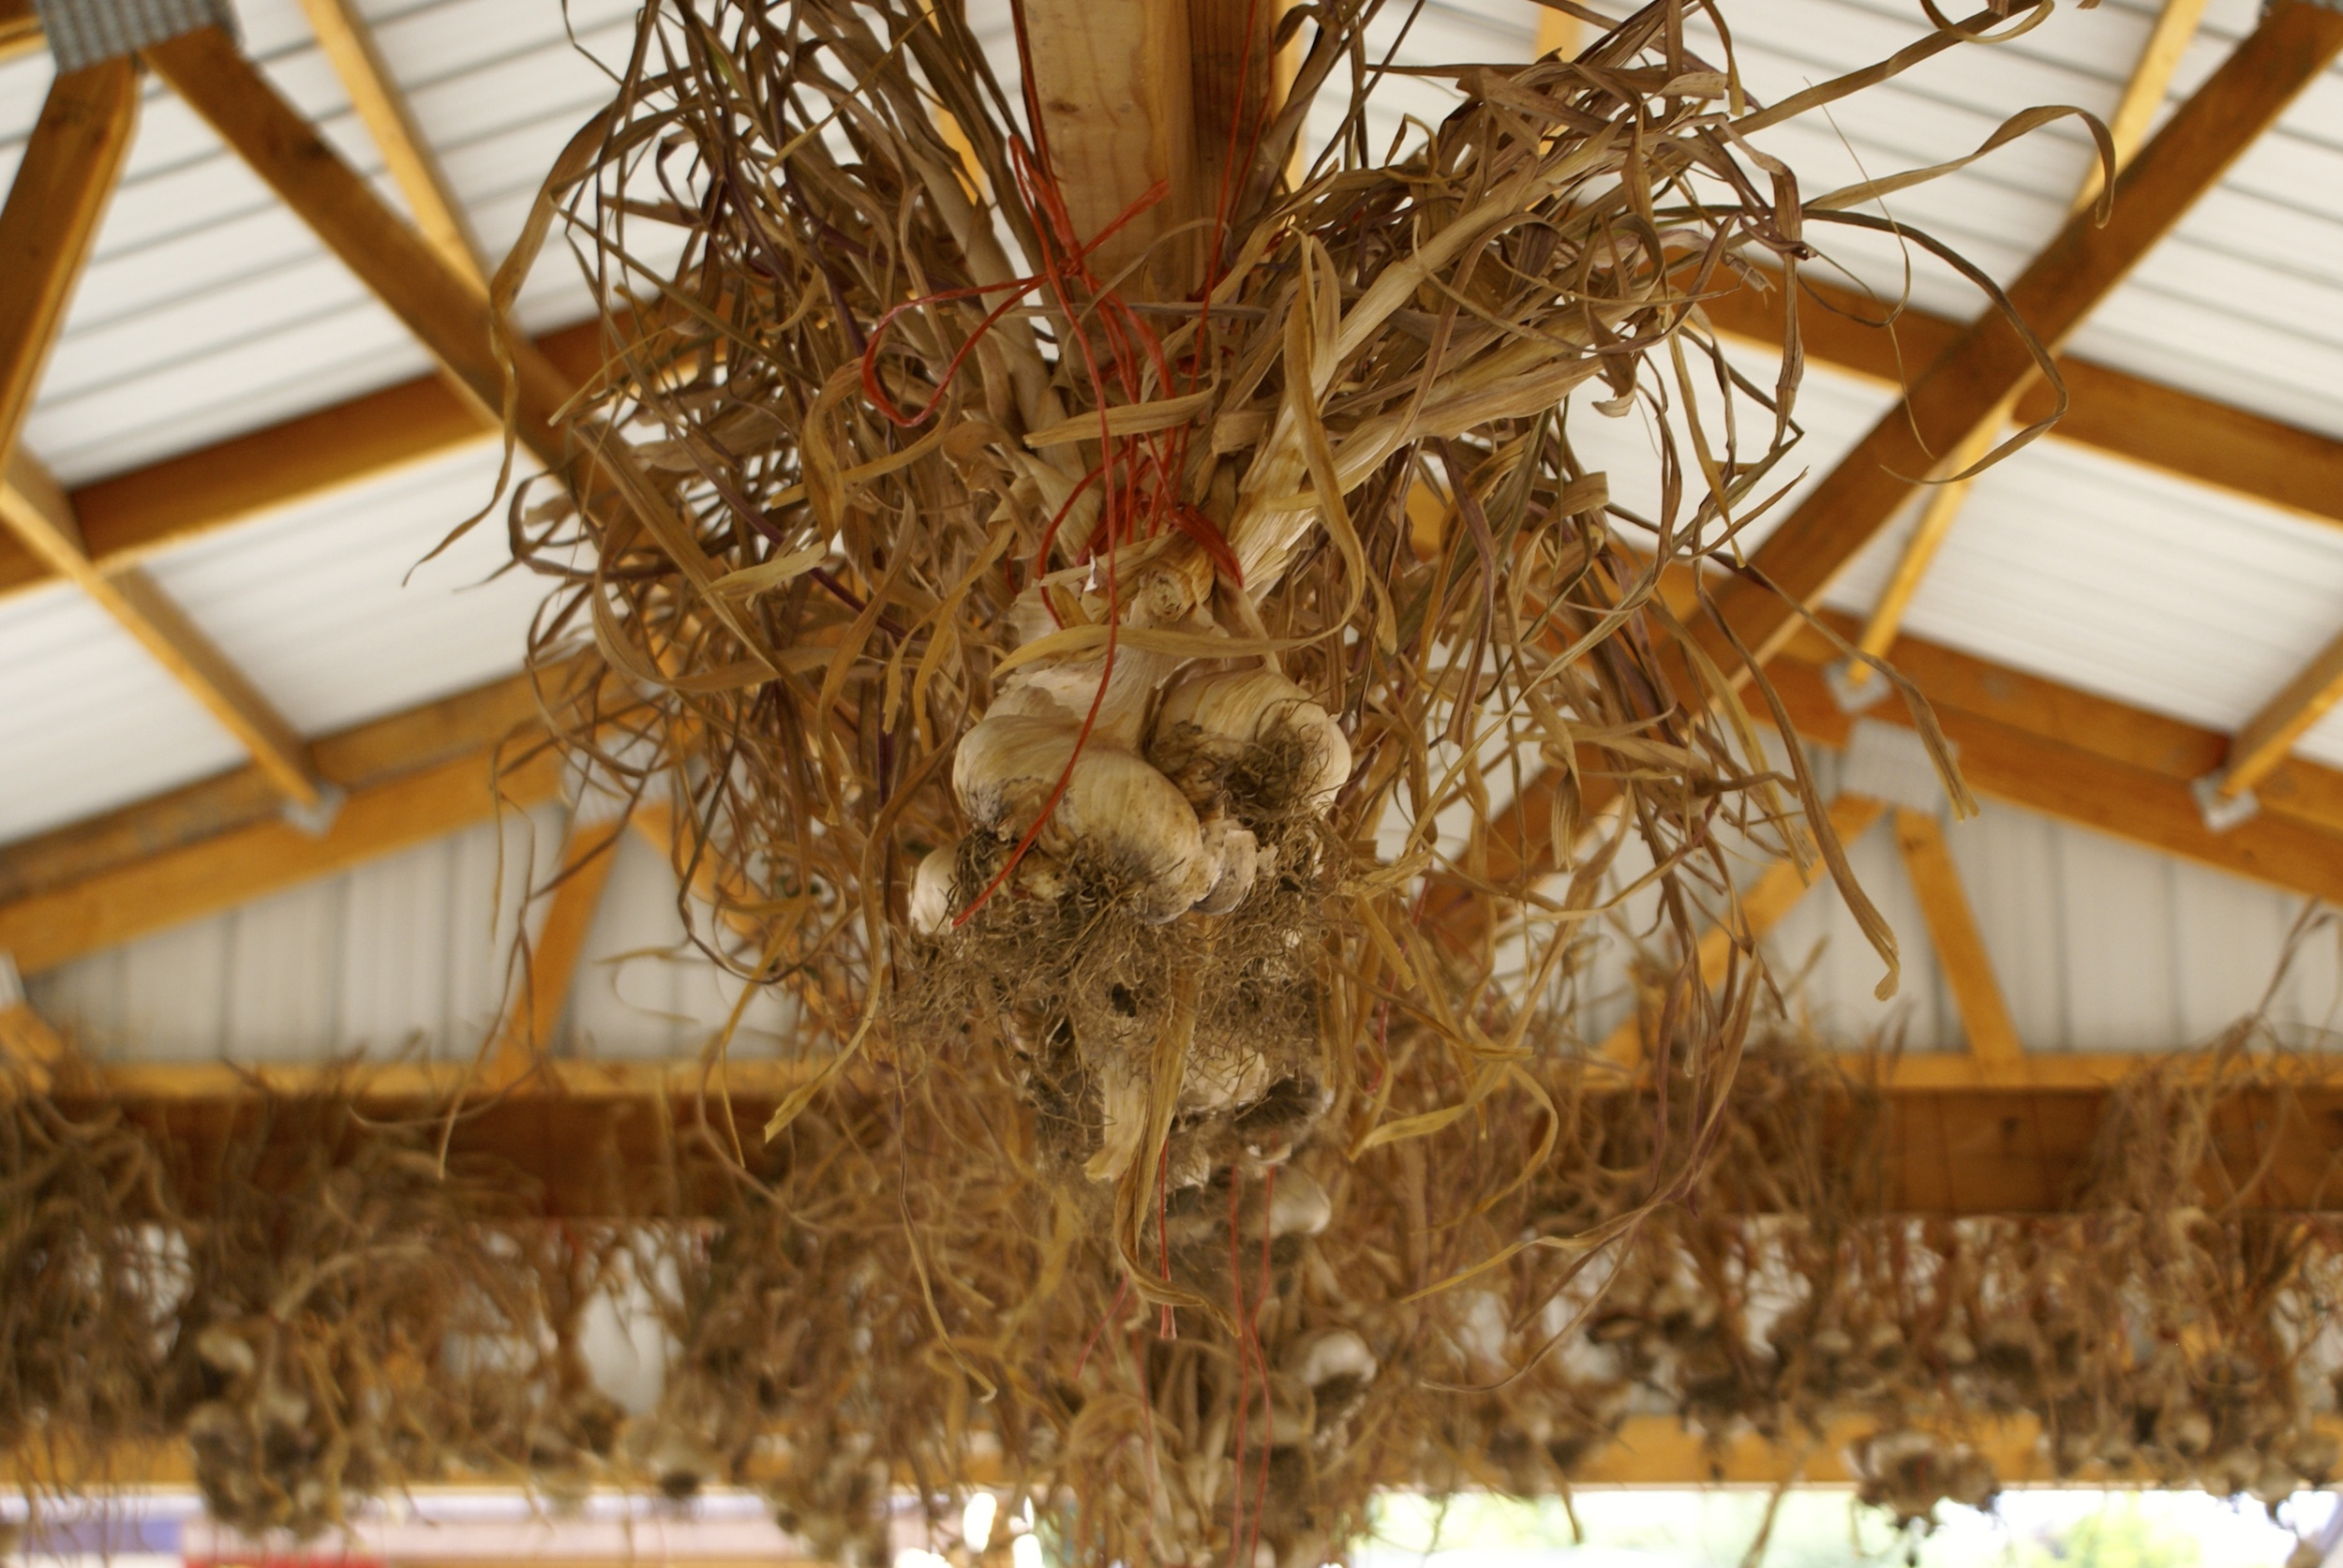 The interns spent hours digging up onions and garlic to hang and dry for the winter.